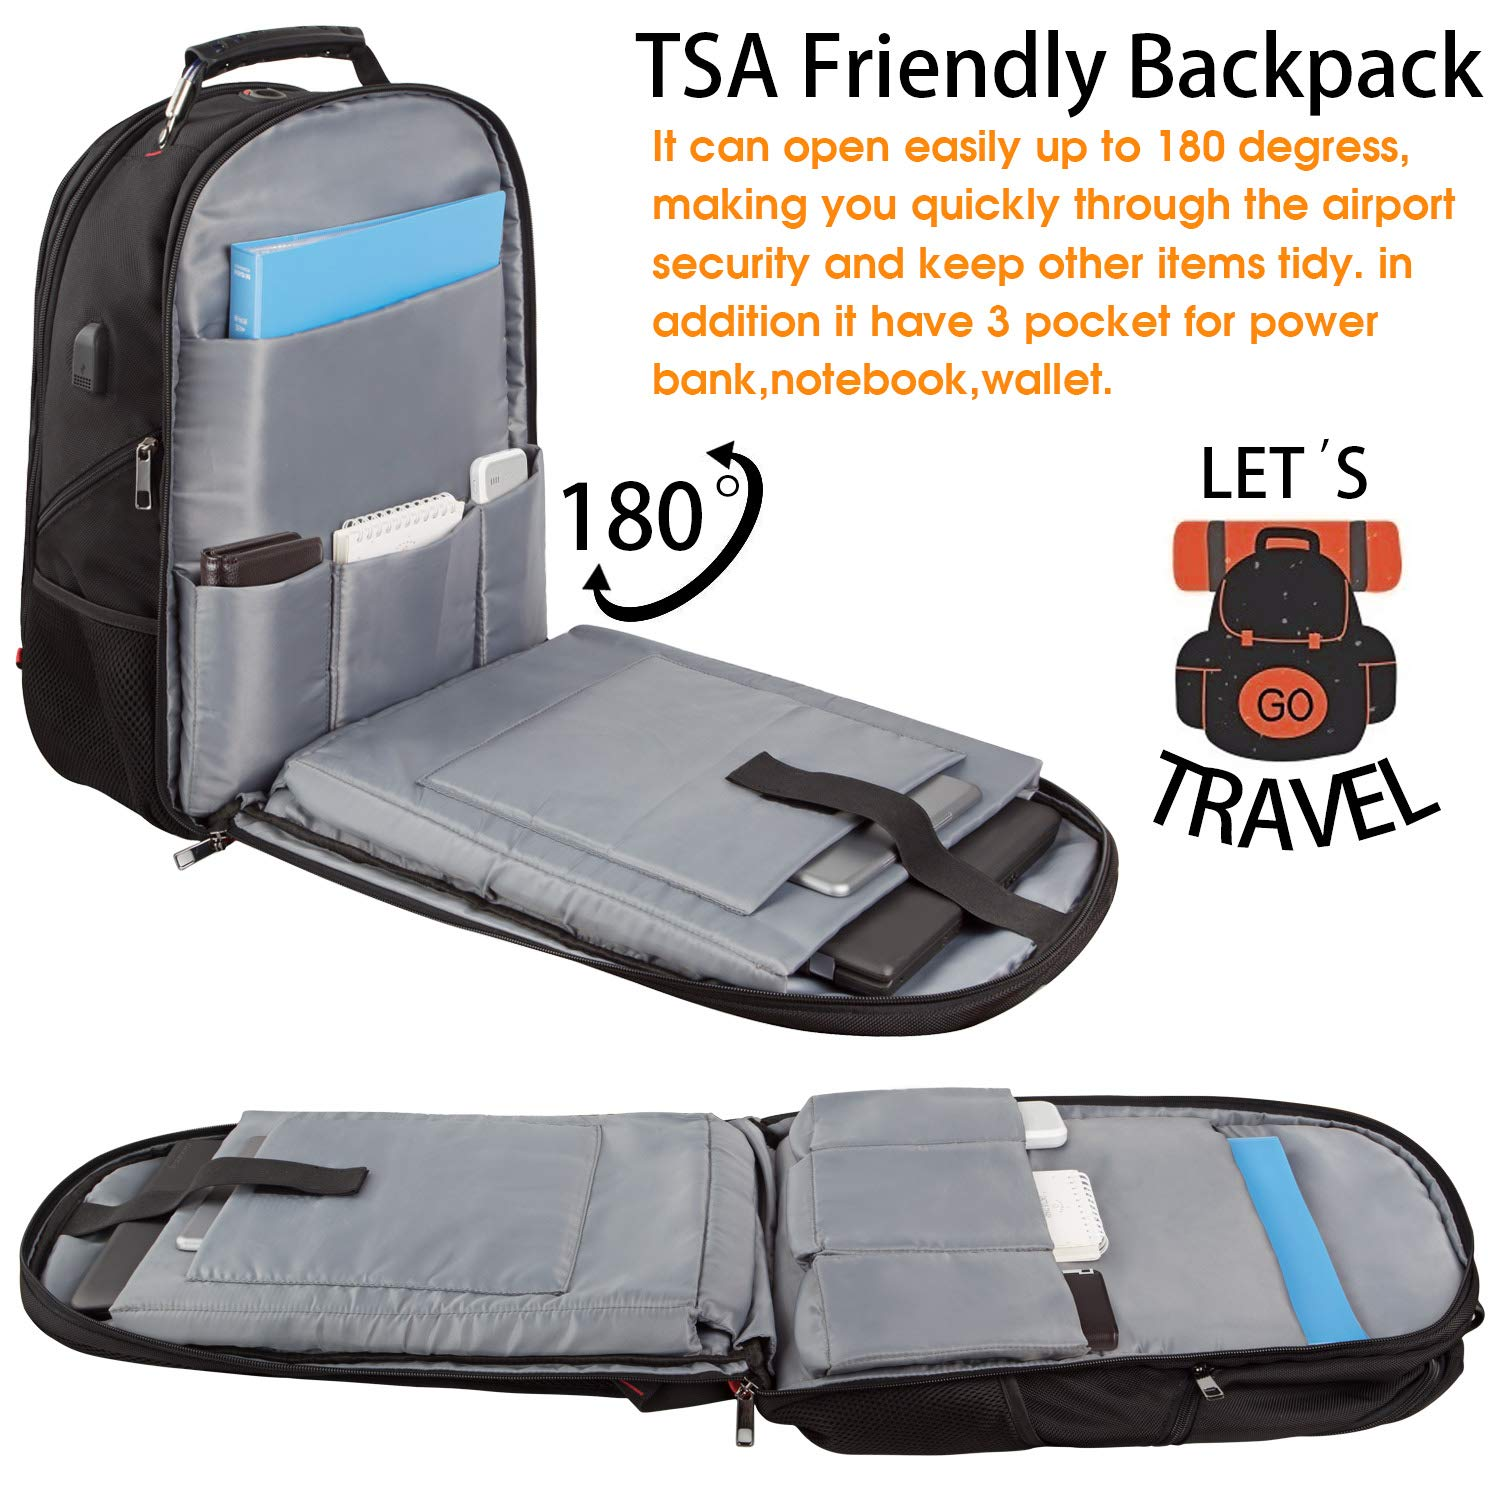 Extra Large Backpack,Travel Laptop Backpack TSA Friendly Durable Computer Backpack with USB Charging Port for Men&Women,Water-Resistant Big Business College School Bookbag Fits 17 Inch Laptop&Notebook by Tinvic (Image #2)